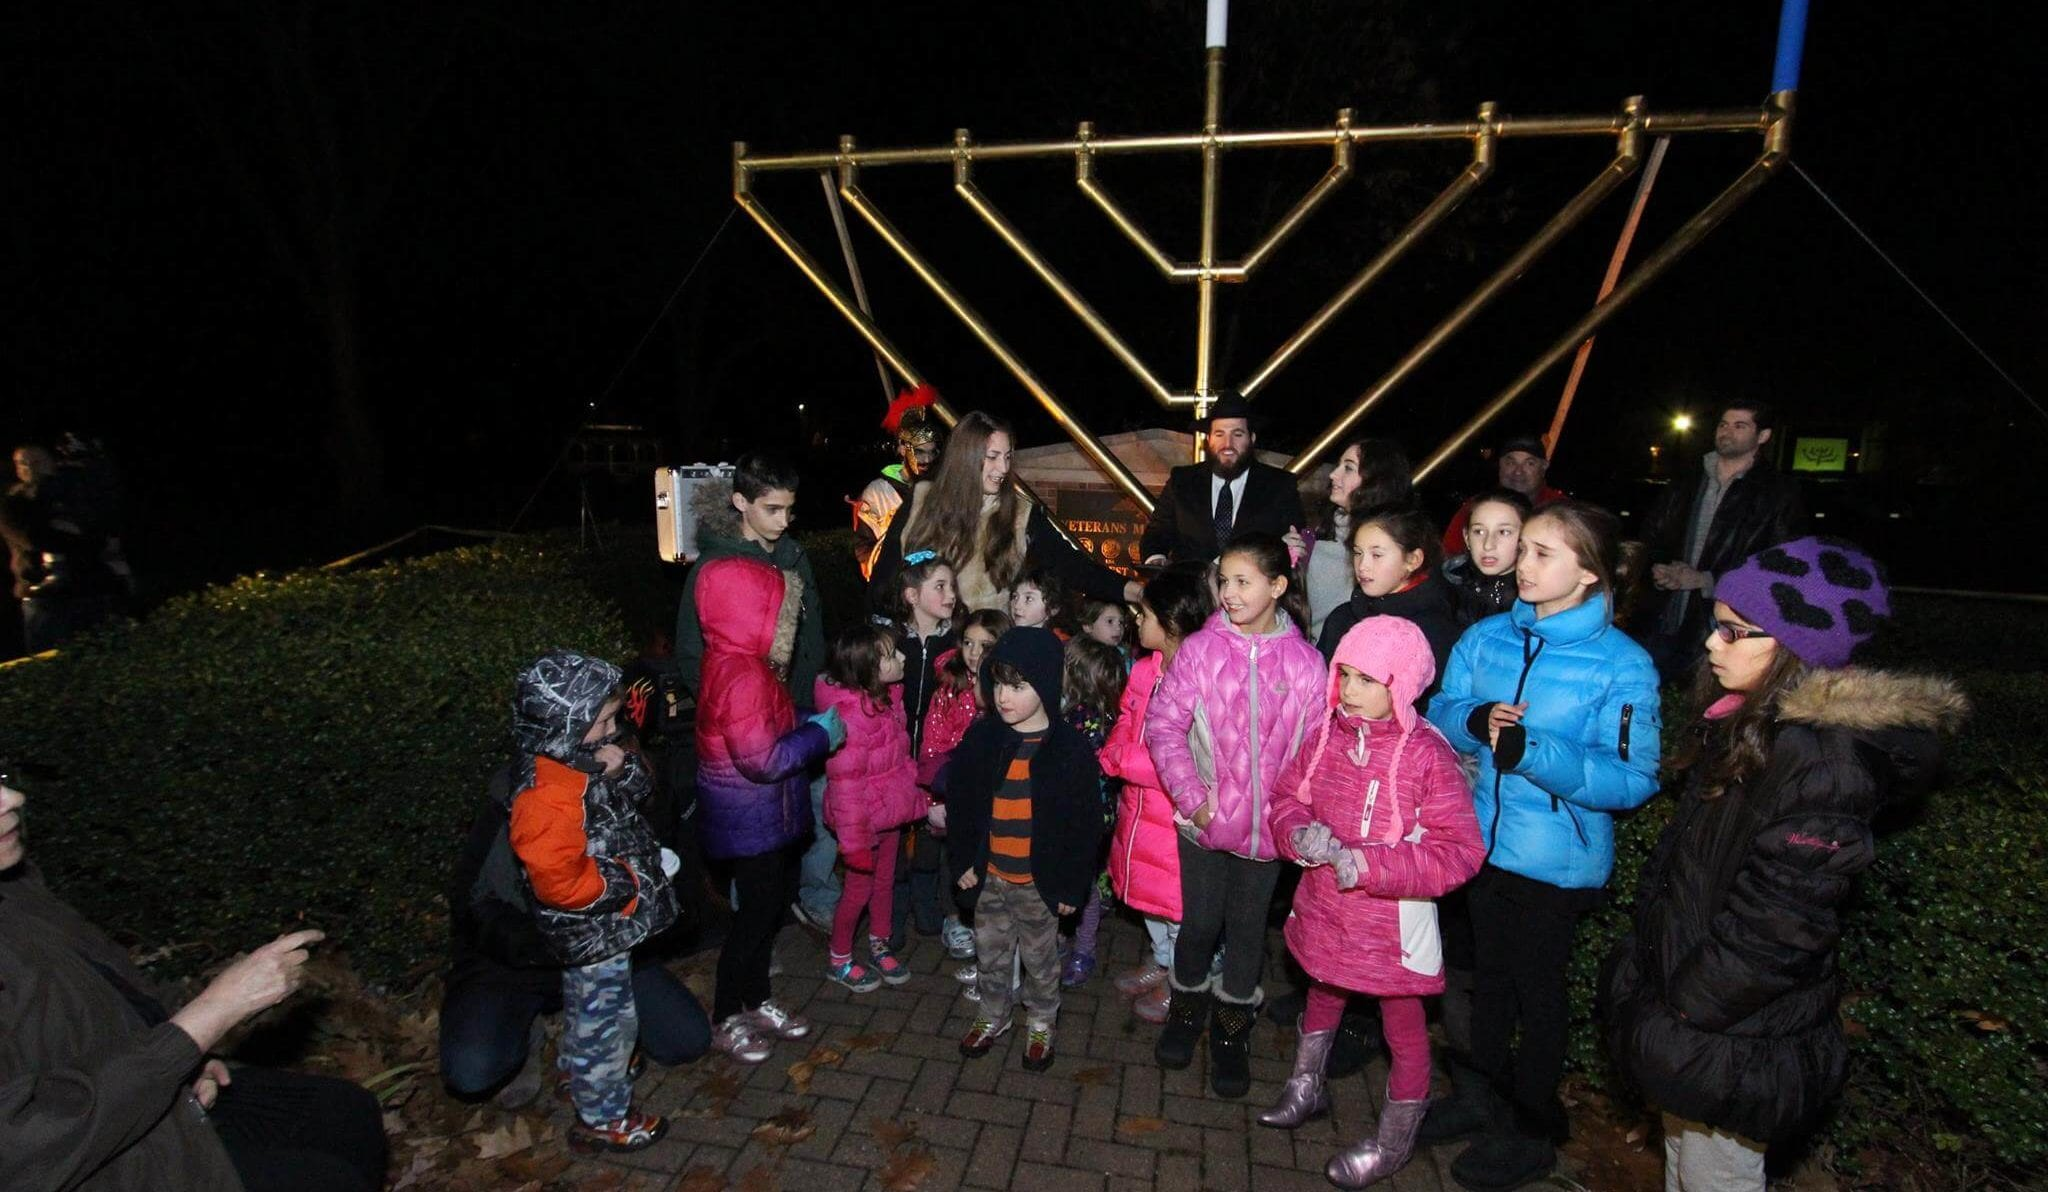 children standing in front of a large menorah